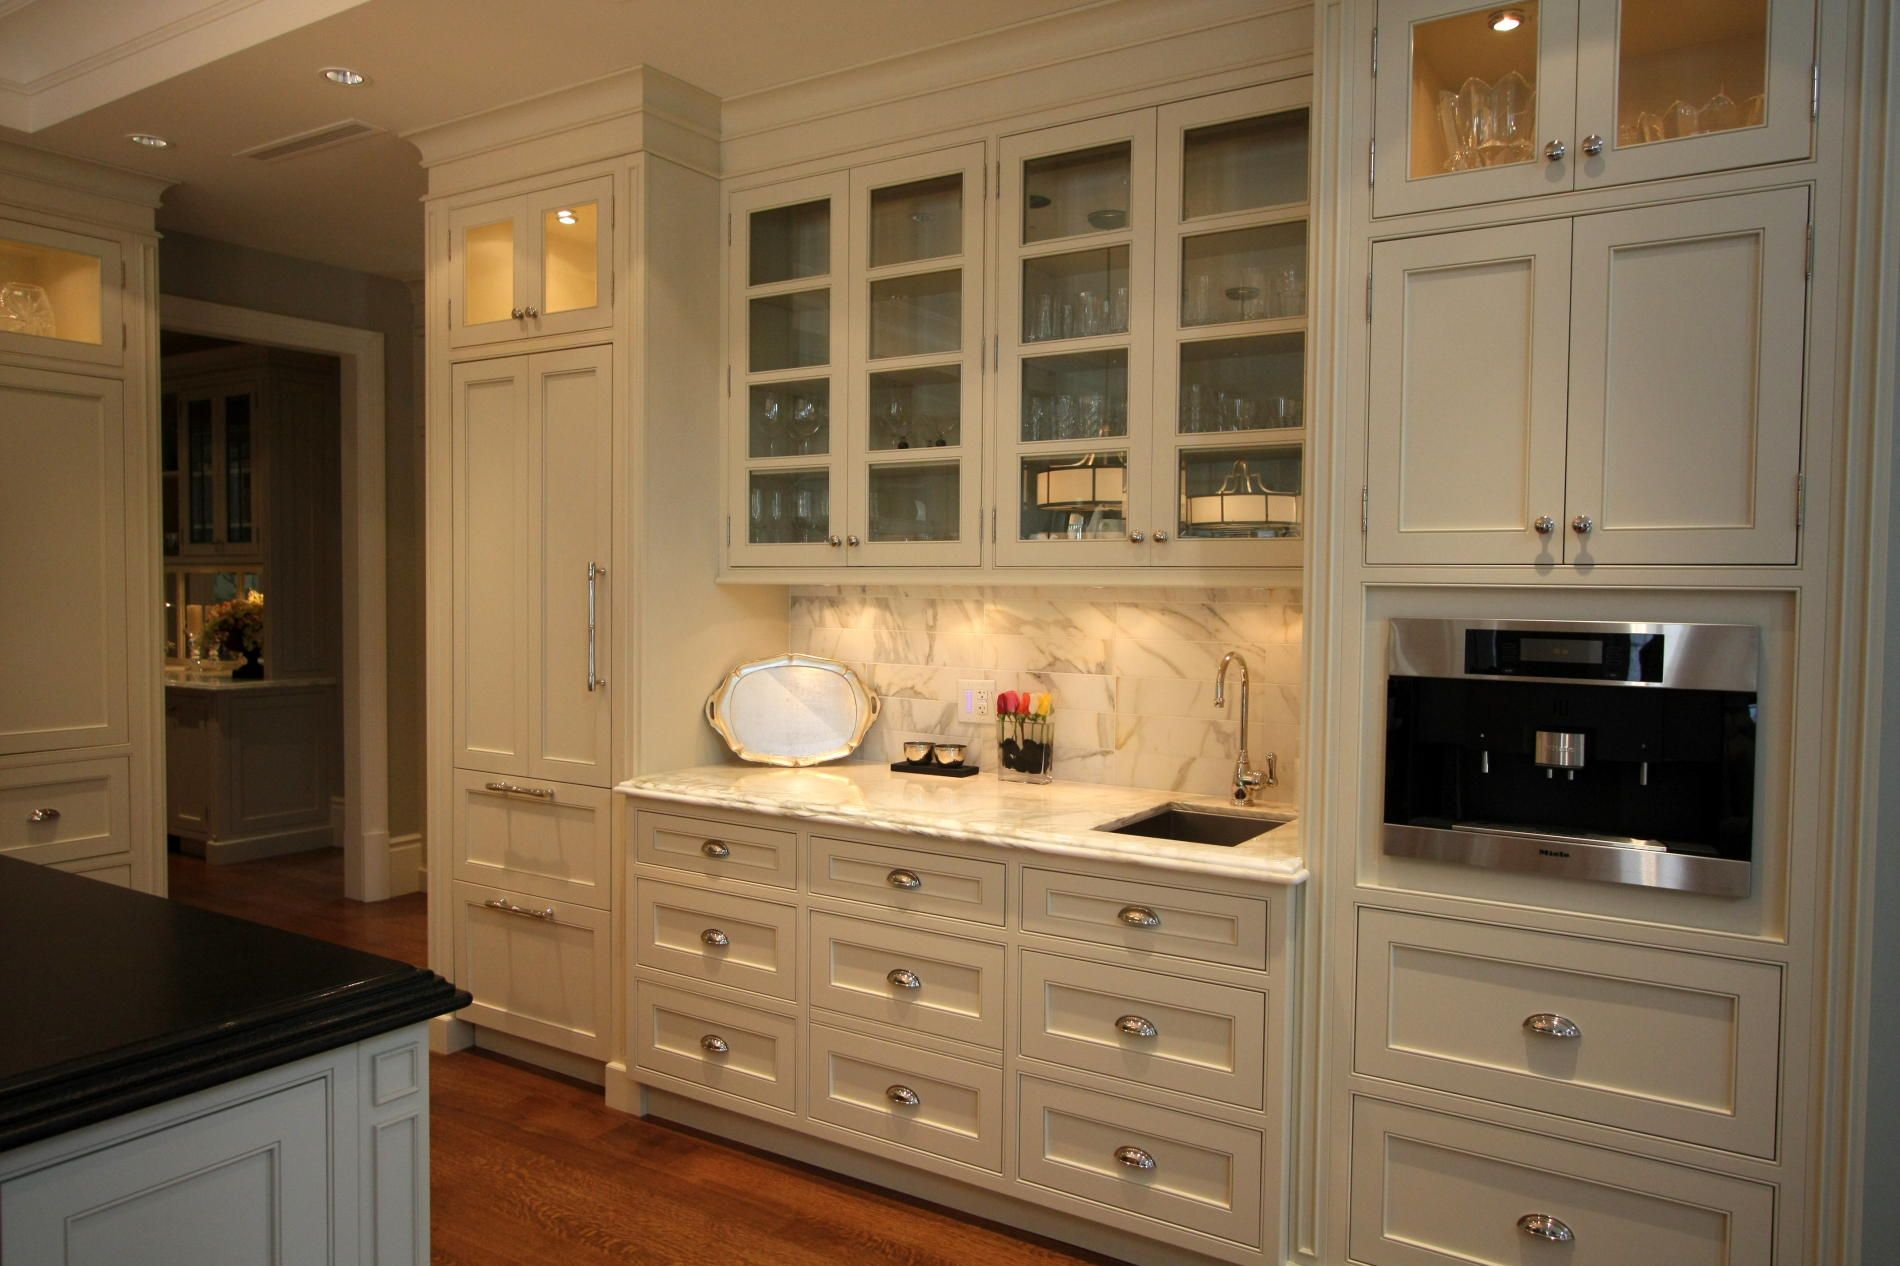 Victorian Kitchens Traditional Victorian Cabinets For Classic Can Kitchen Cabinet Remodel Kitchen Design Traditional White Traditional Kitchen Cabinets